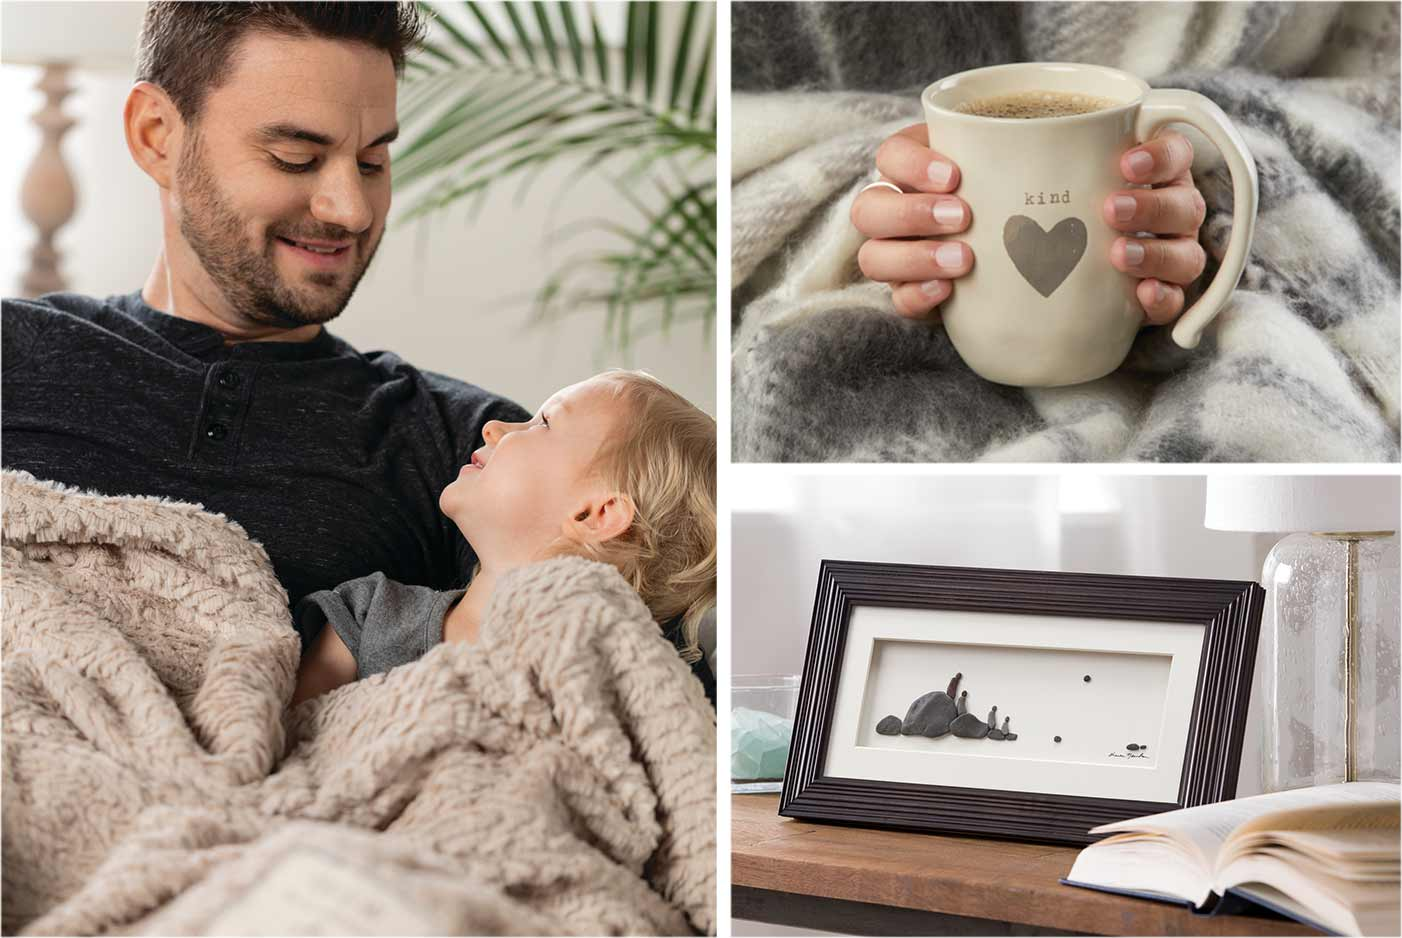 Dad and daughter snuggled under a soft blanket together. Hands wearming around a mug decorated with the words kind heart. Framed art of a family of four people setting on a living room table.